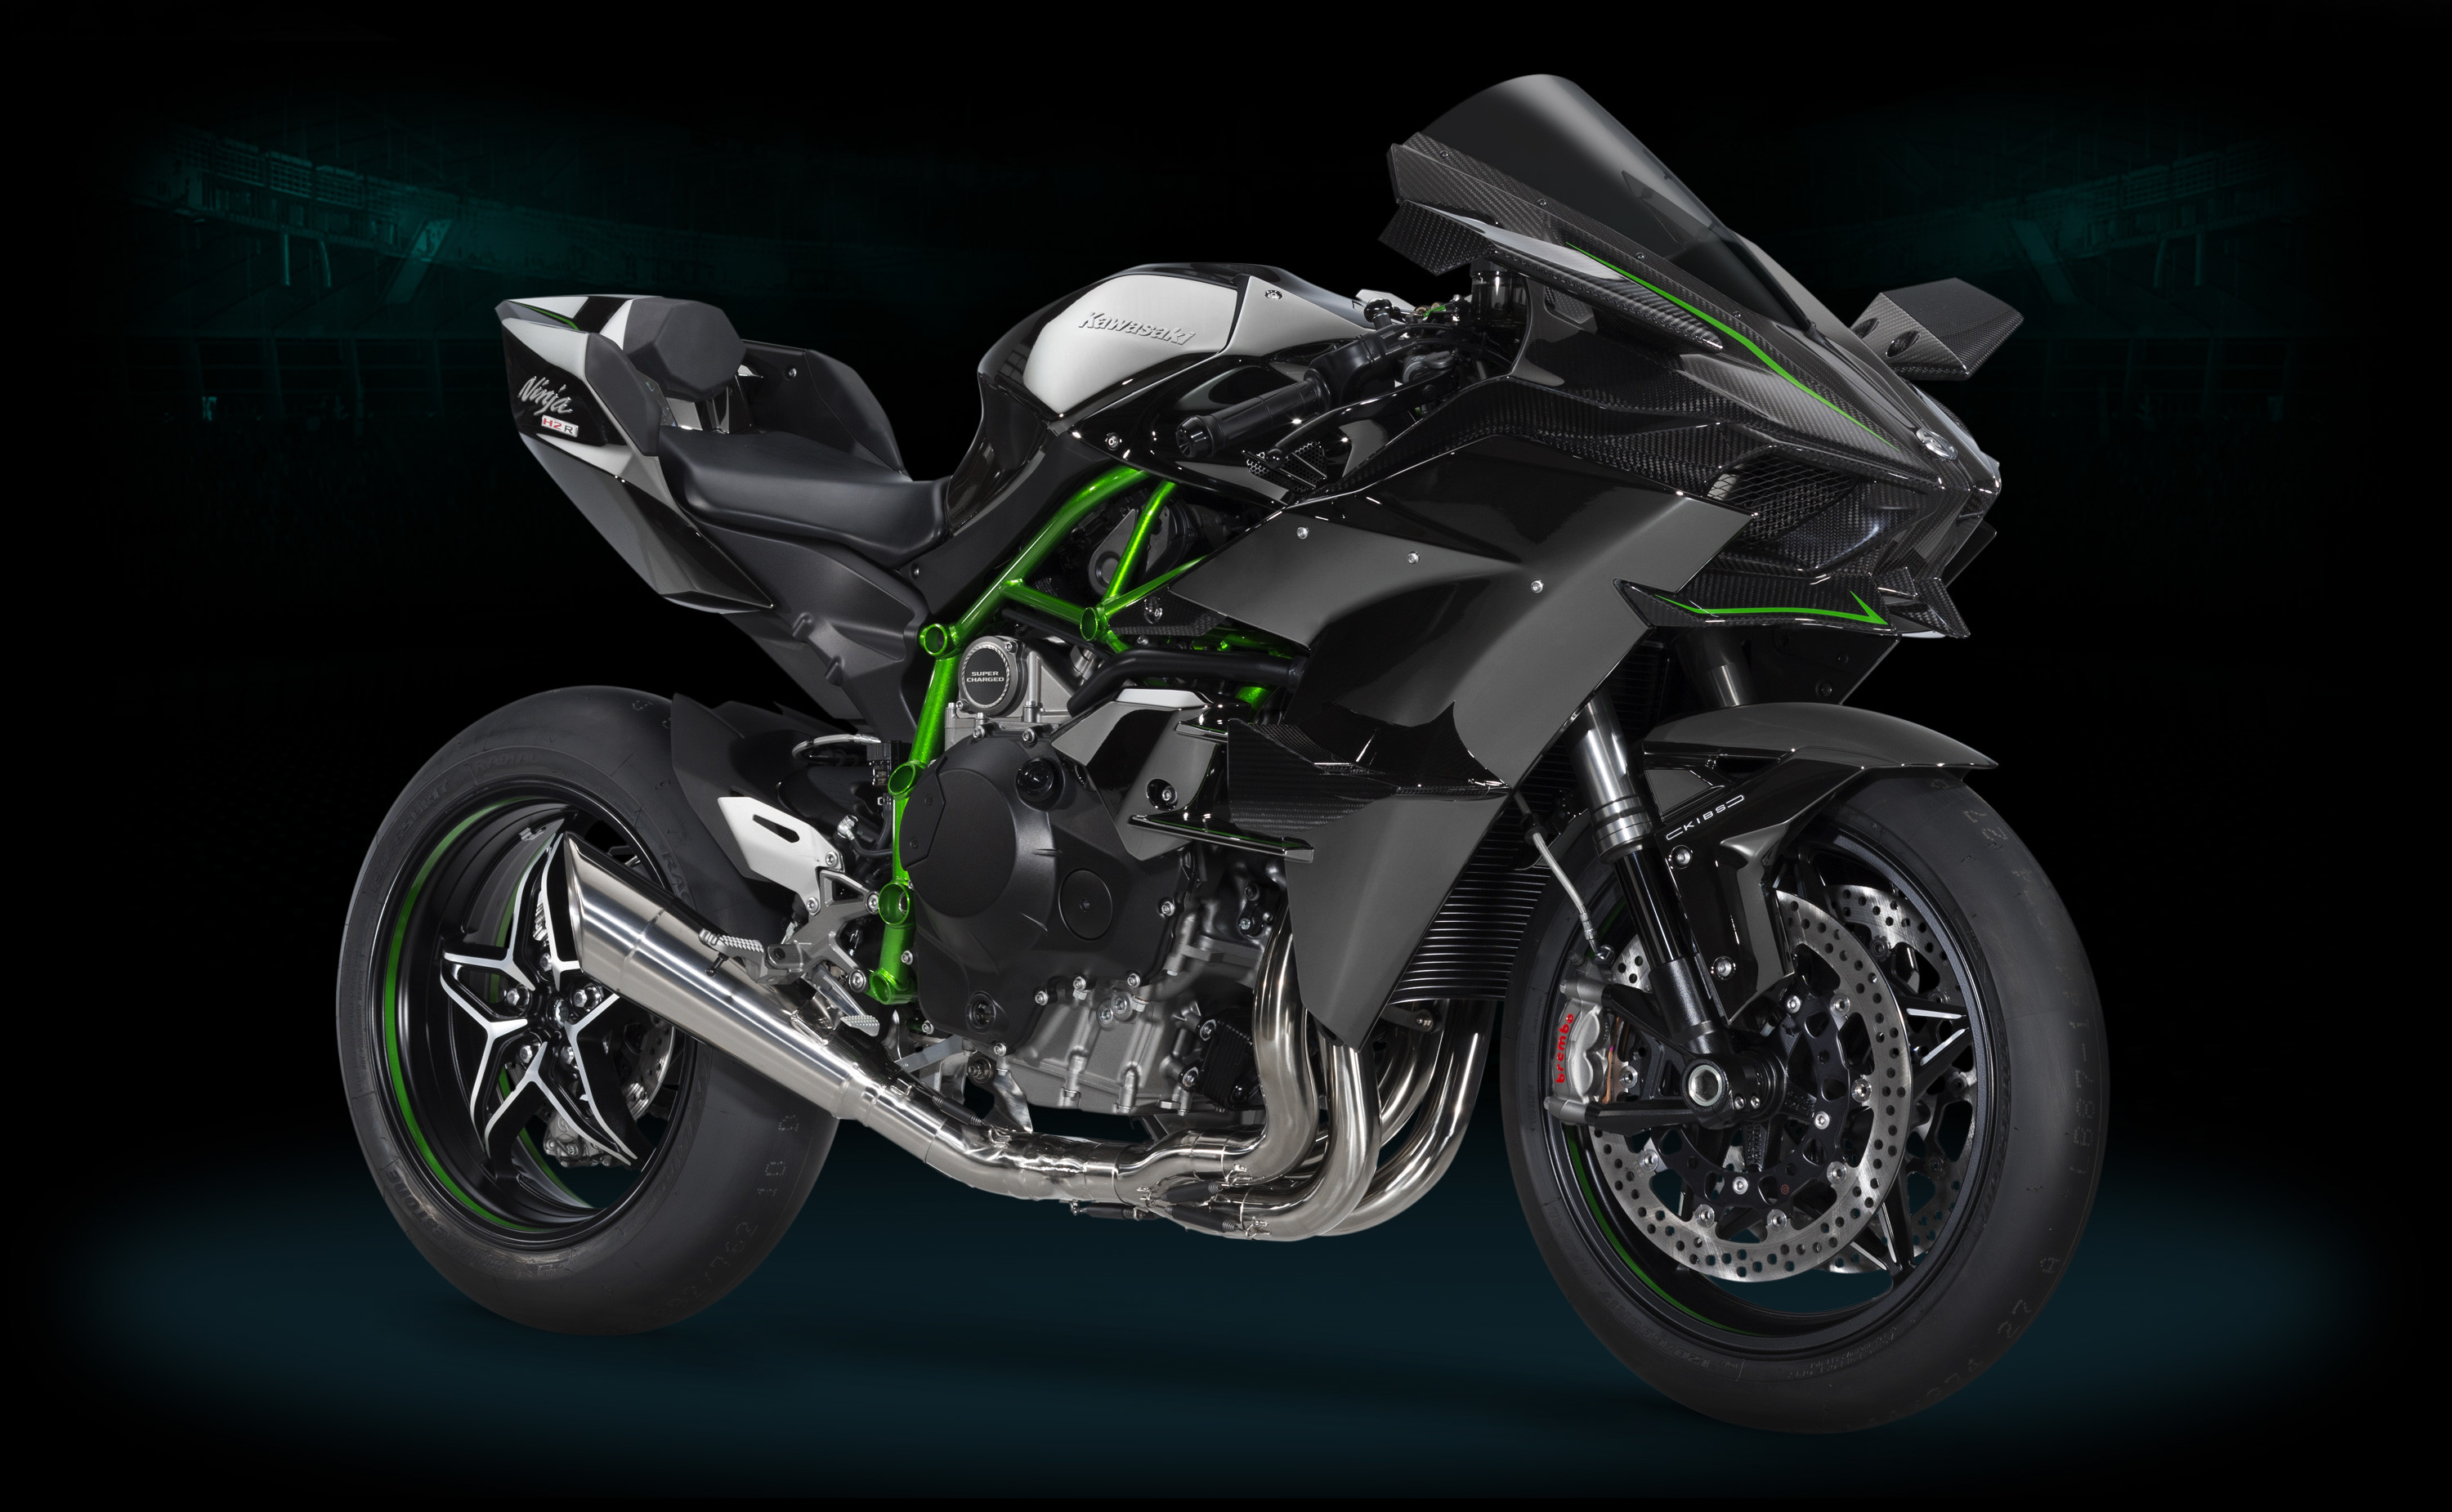 Kawasaki Ninja H2R And H2 At EICMA